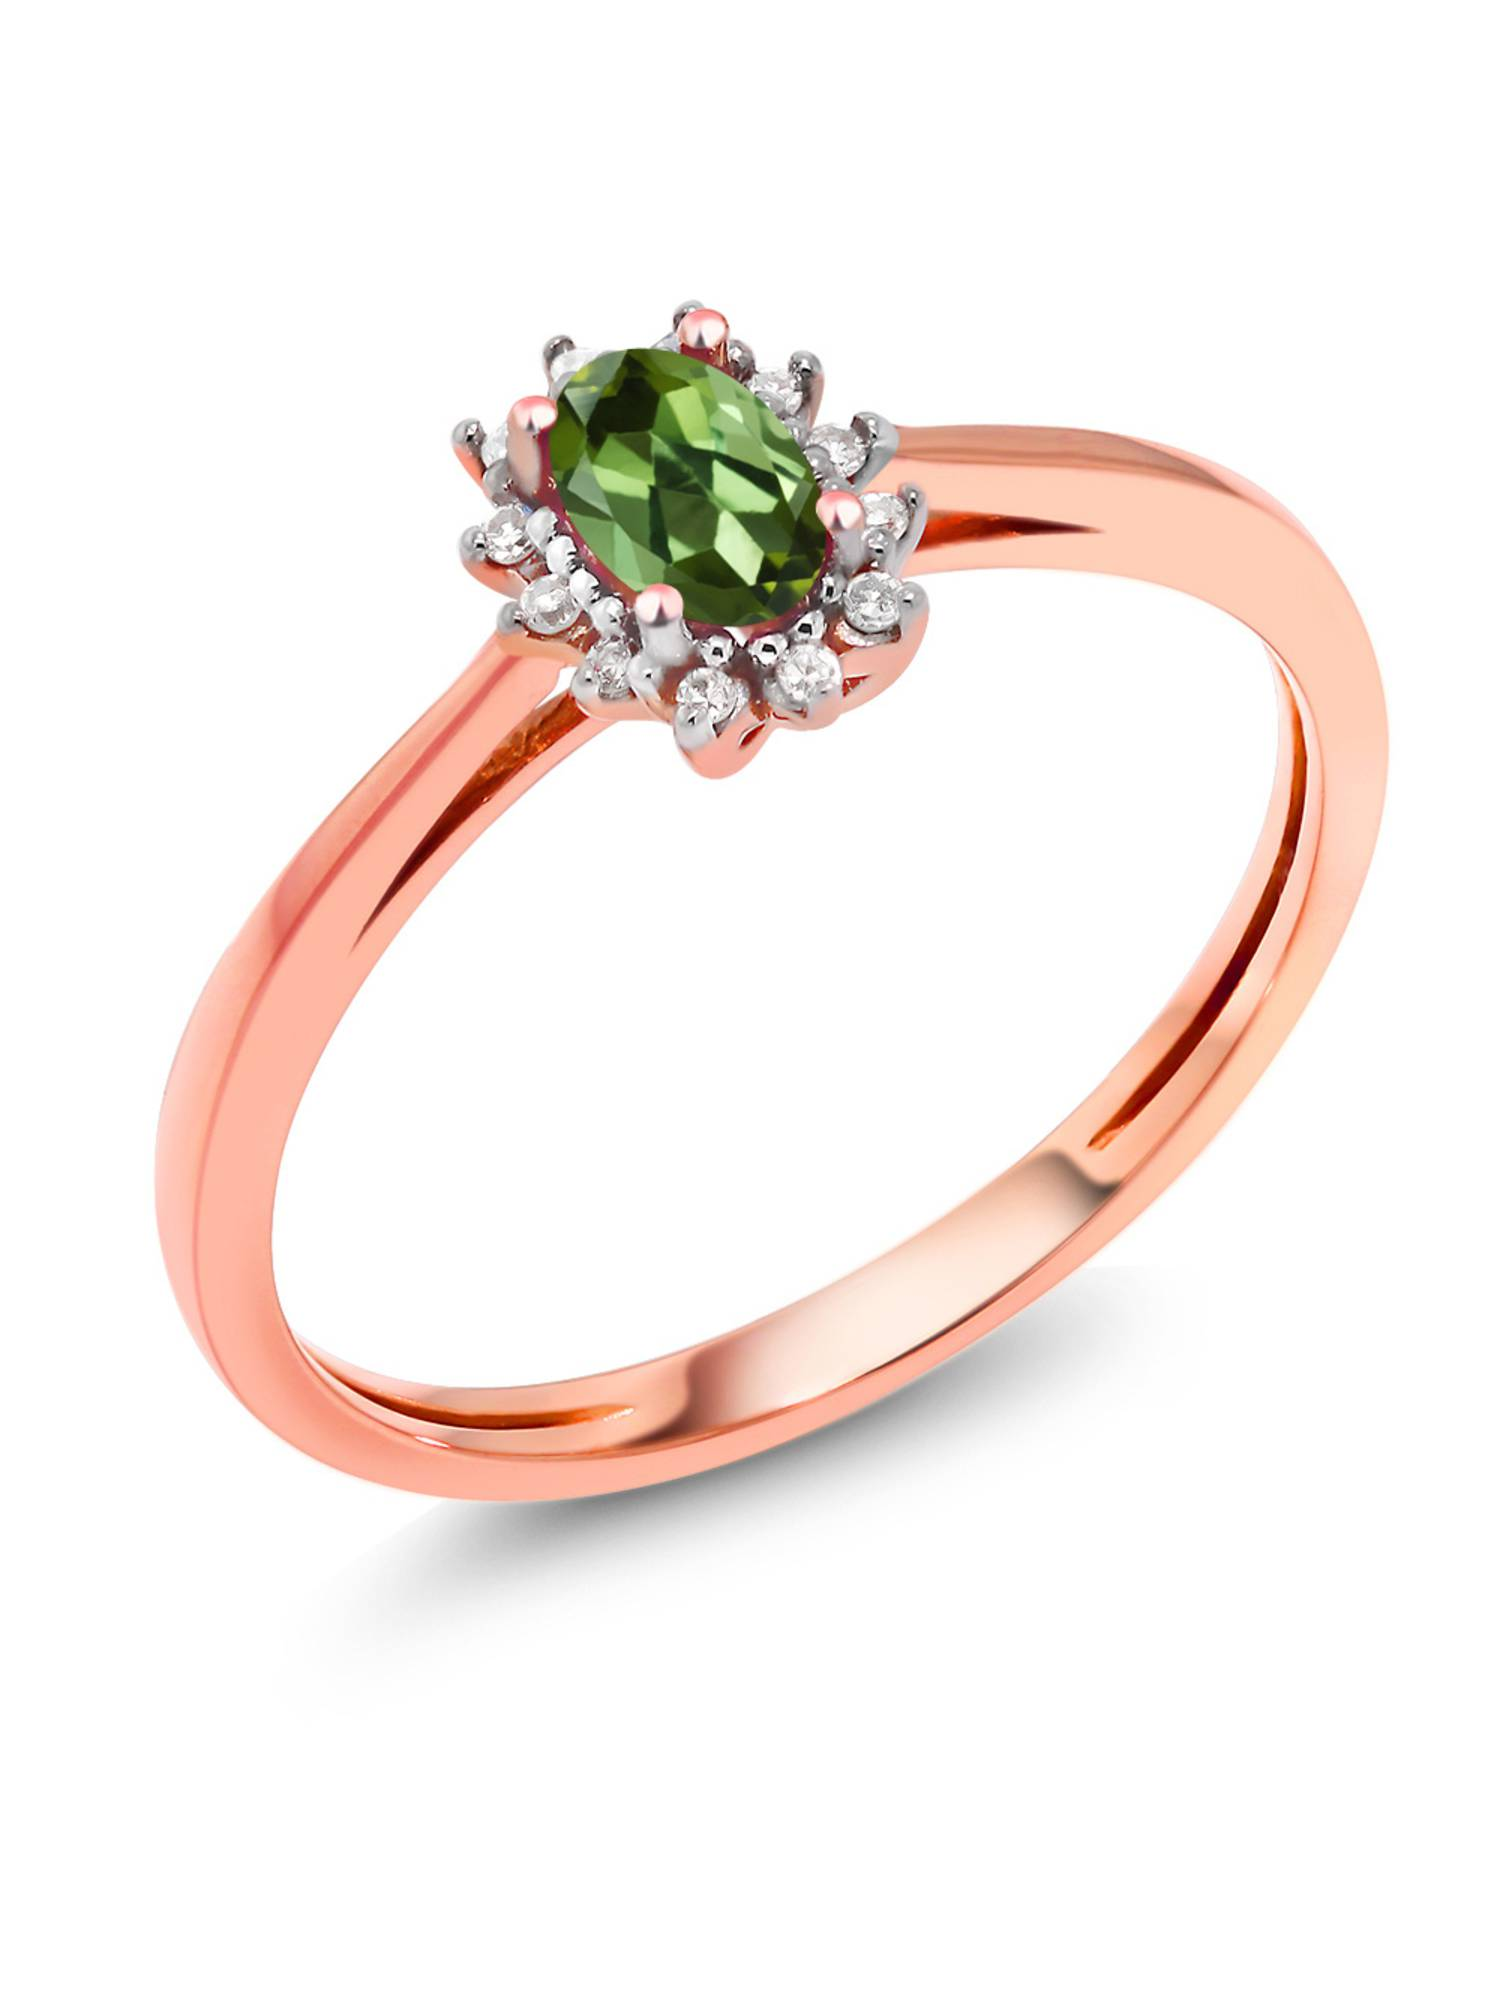 18K Rose Gold 0.08 Ct Green Tourmaline with Diamond Accent Engagement Ring by